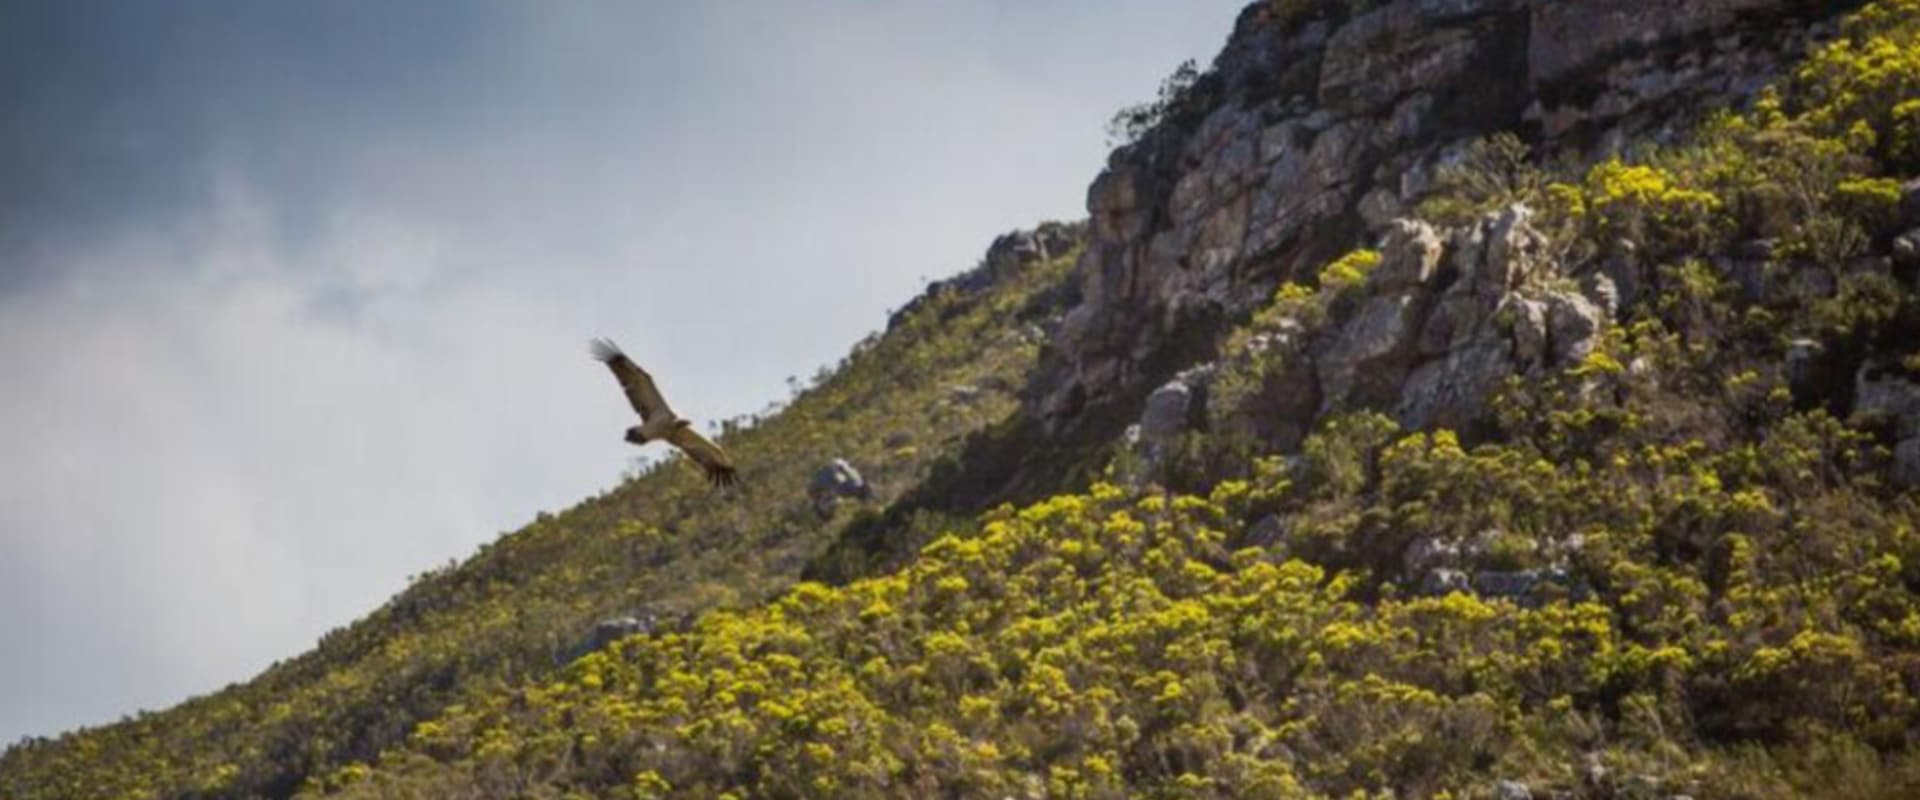 Get close to endangered Cape Vultures in flight